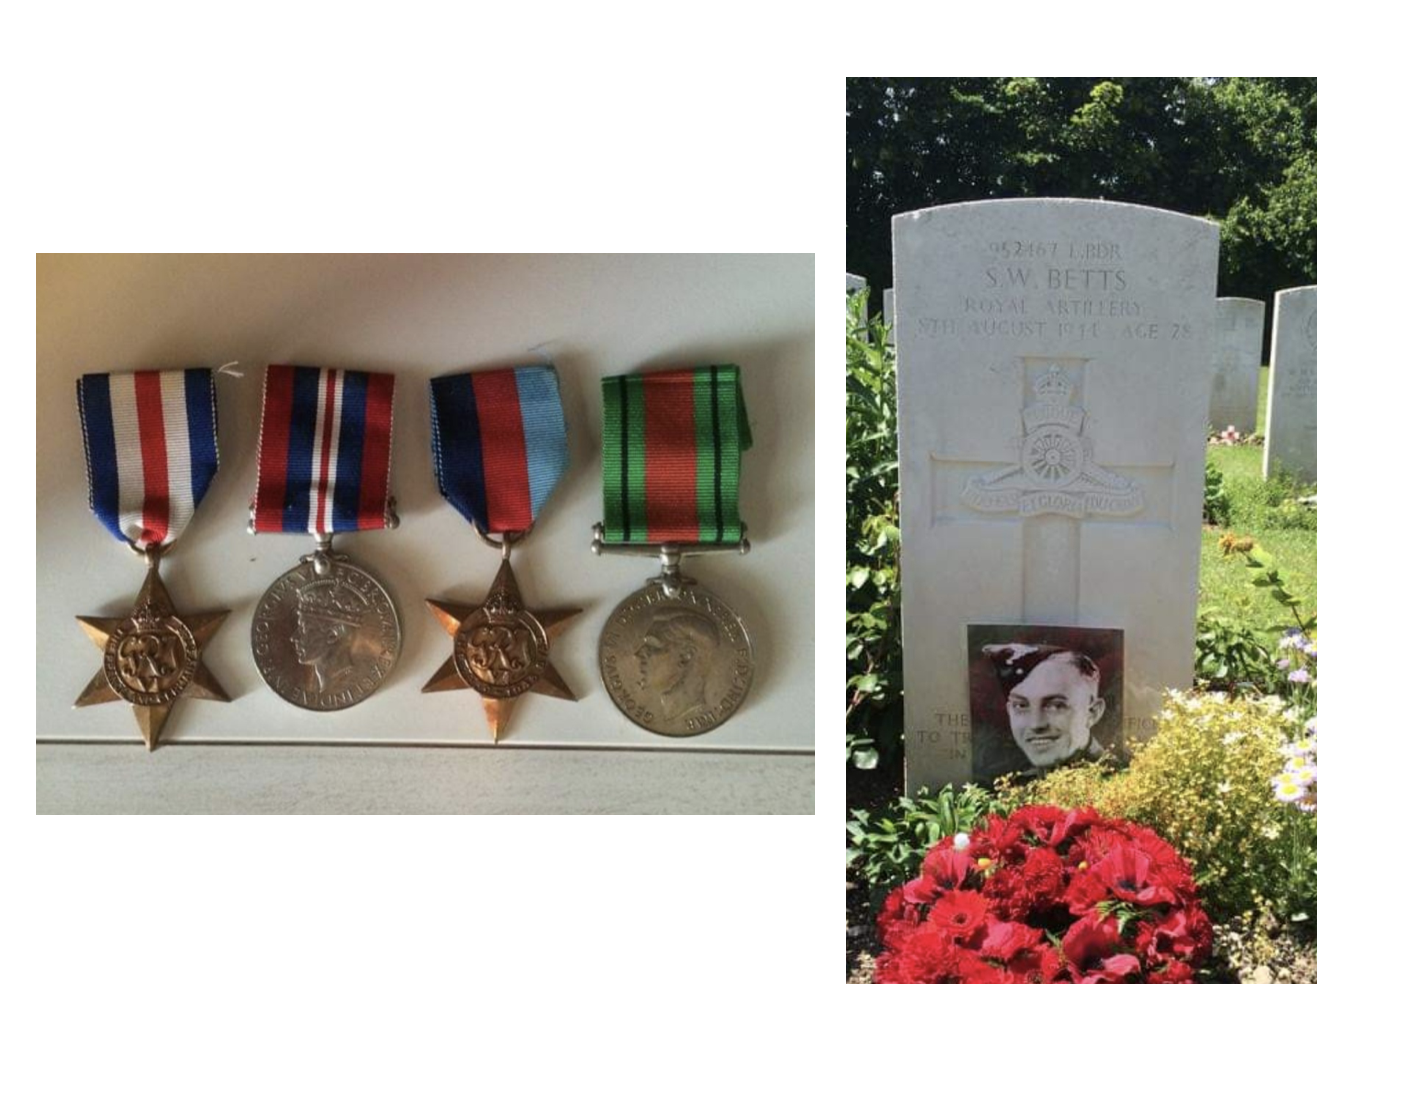 Two pictures - on left, 4 war medals and on right, Stanley's grave stone with red flowers and his photo in front of the headstone